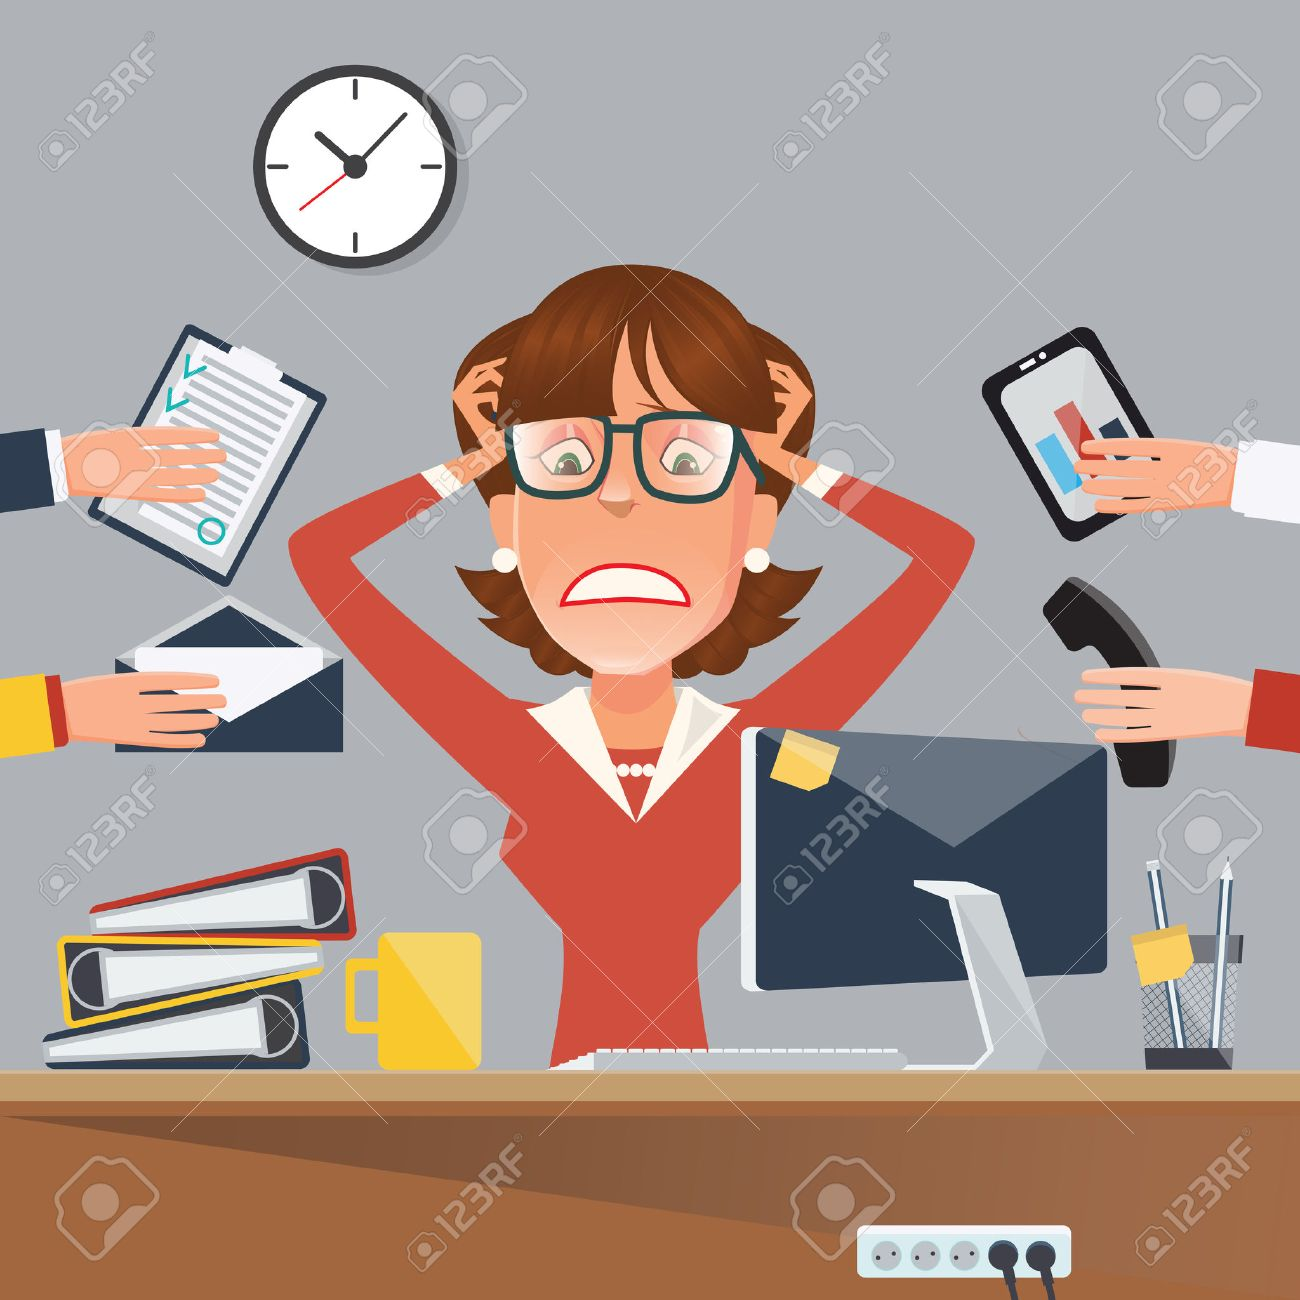 Multitasking Stressed Business Woman in Office Work Place. Vector illustration - 58727016